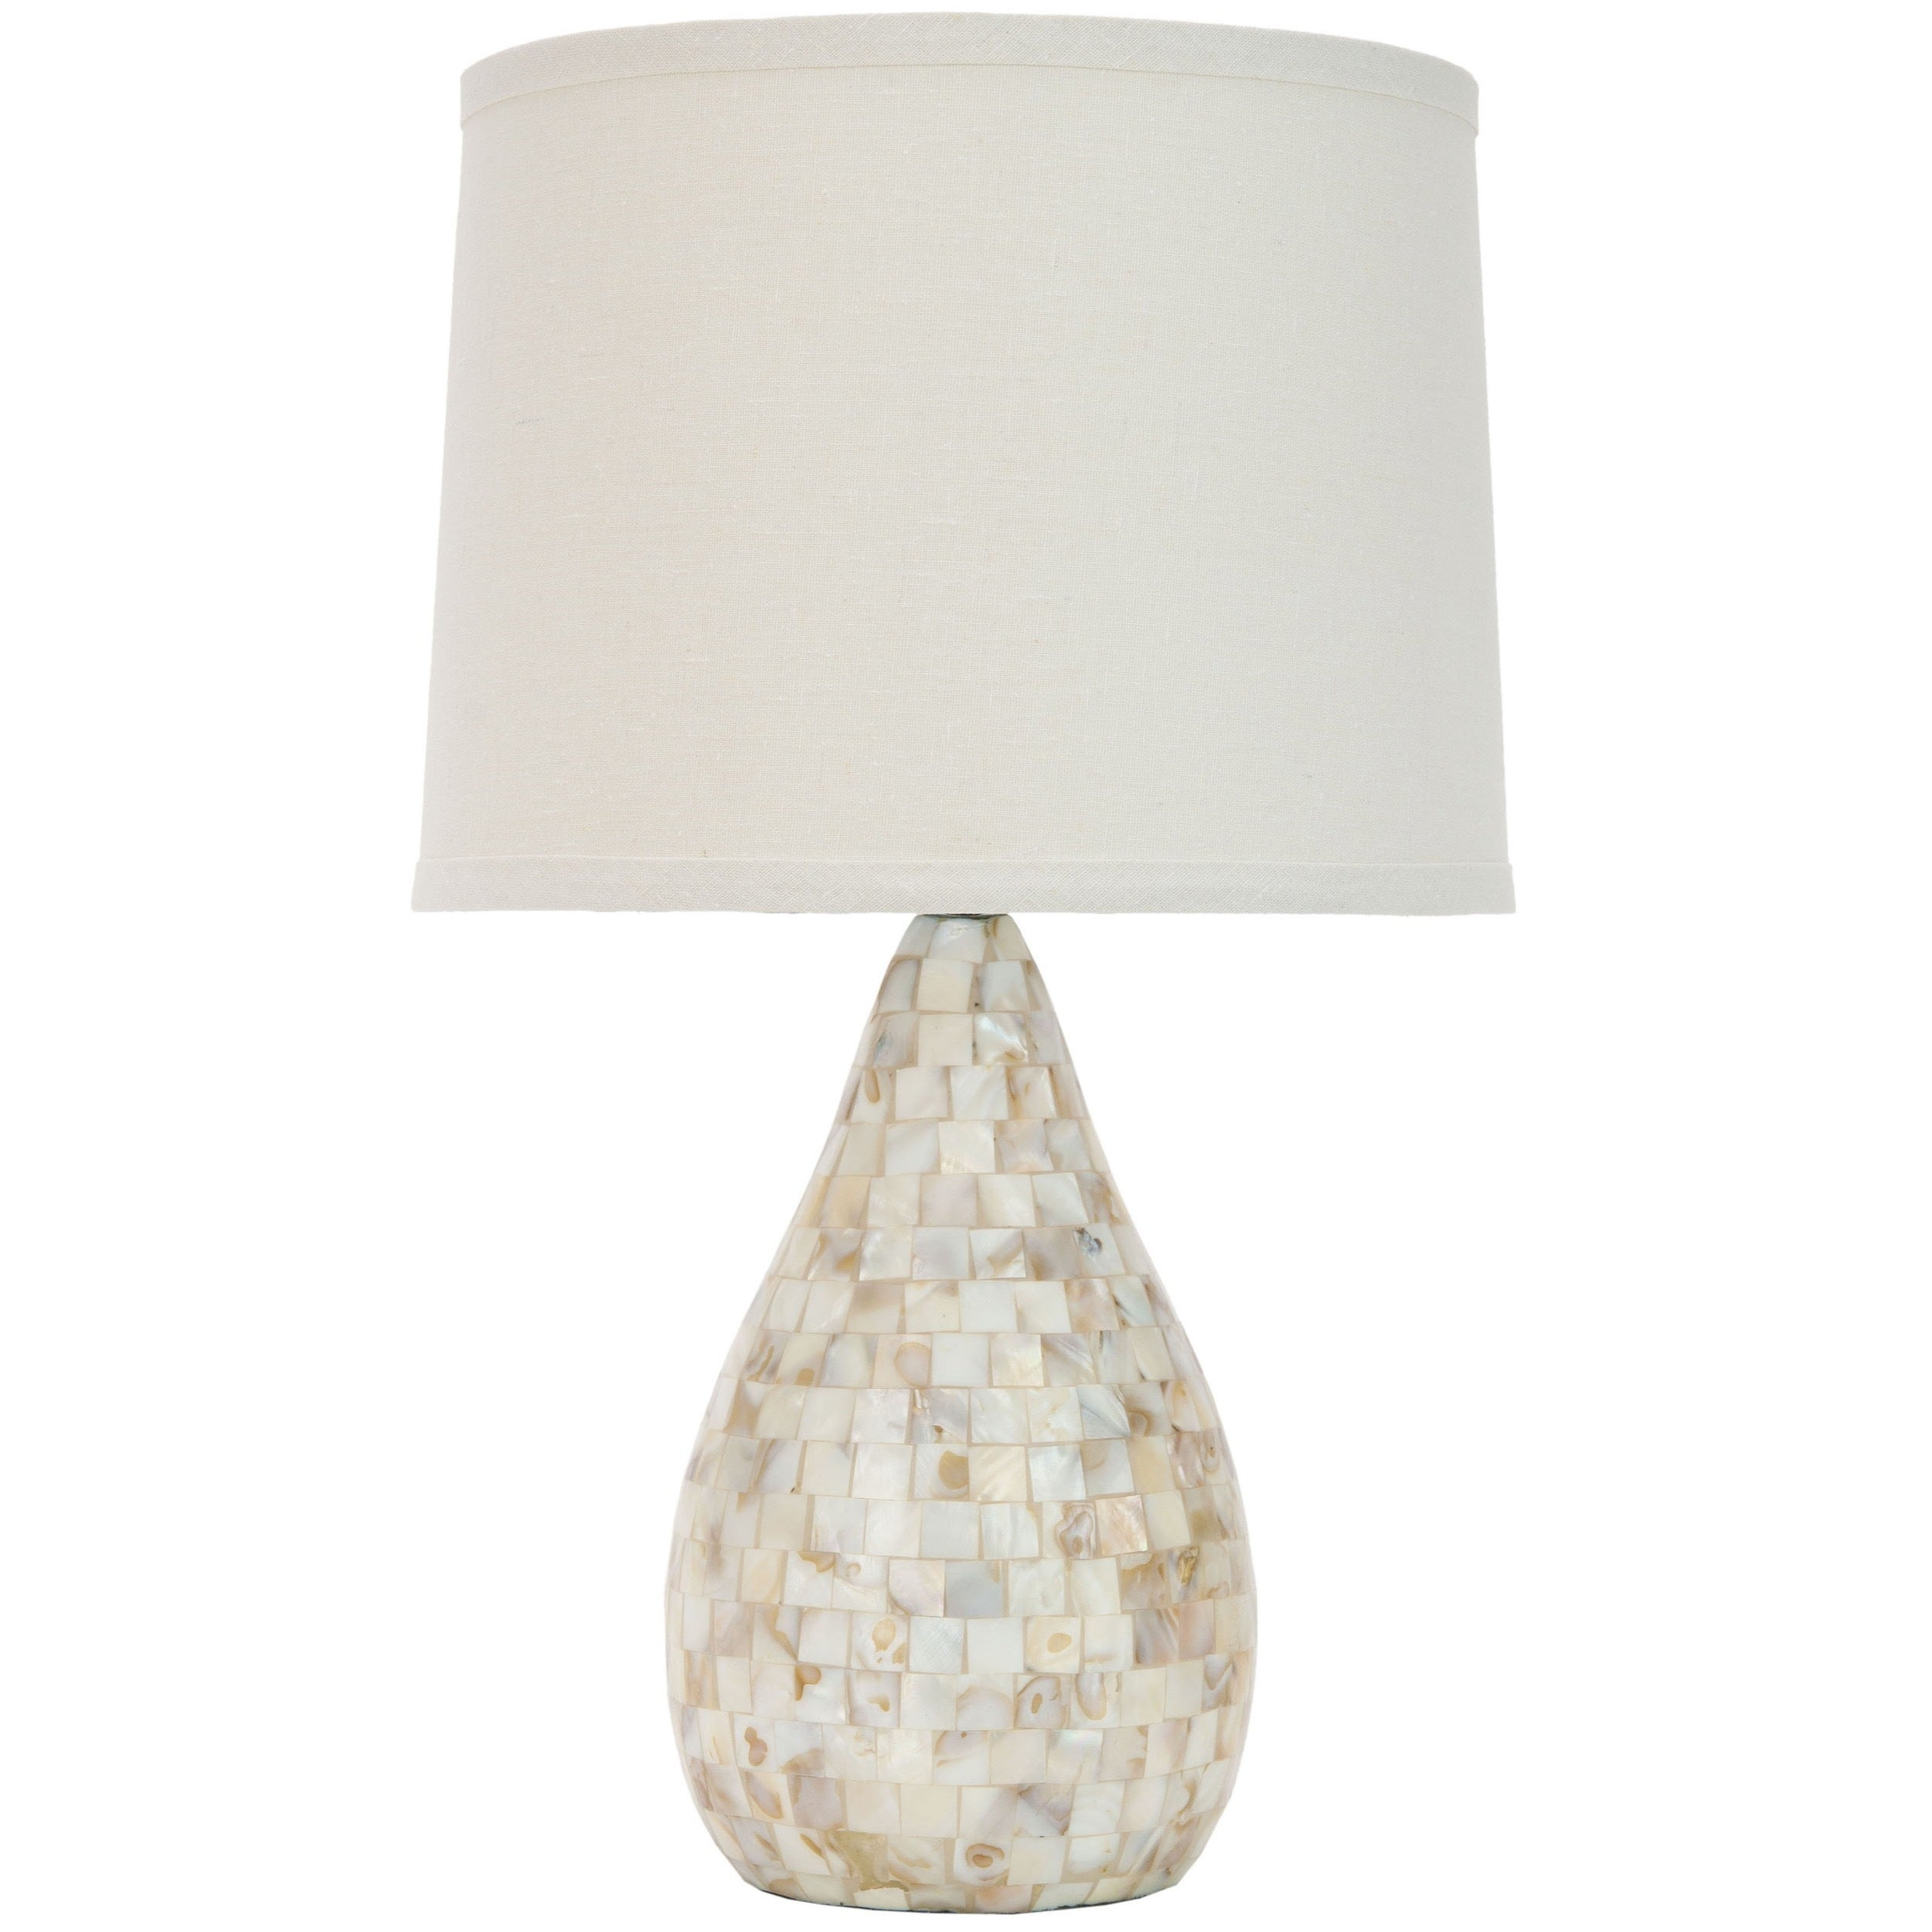 Shop safavieh lighting 205 inch mother of pearl table lamp set of shop safavieh lighting 205 inch mother of pearl table lamp set of 2 on sale free shipping today overstock 6128550 aloadofball Choice Image